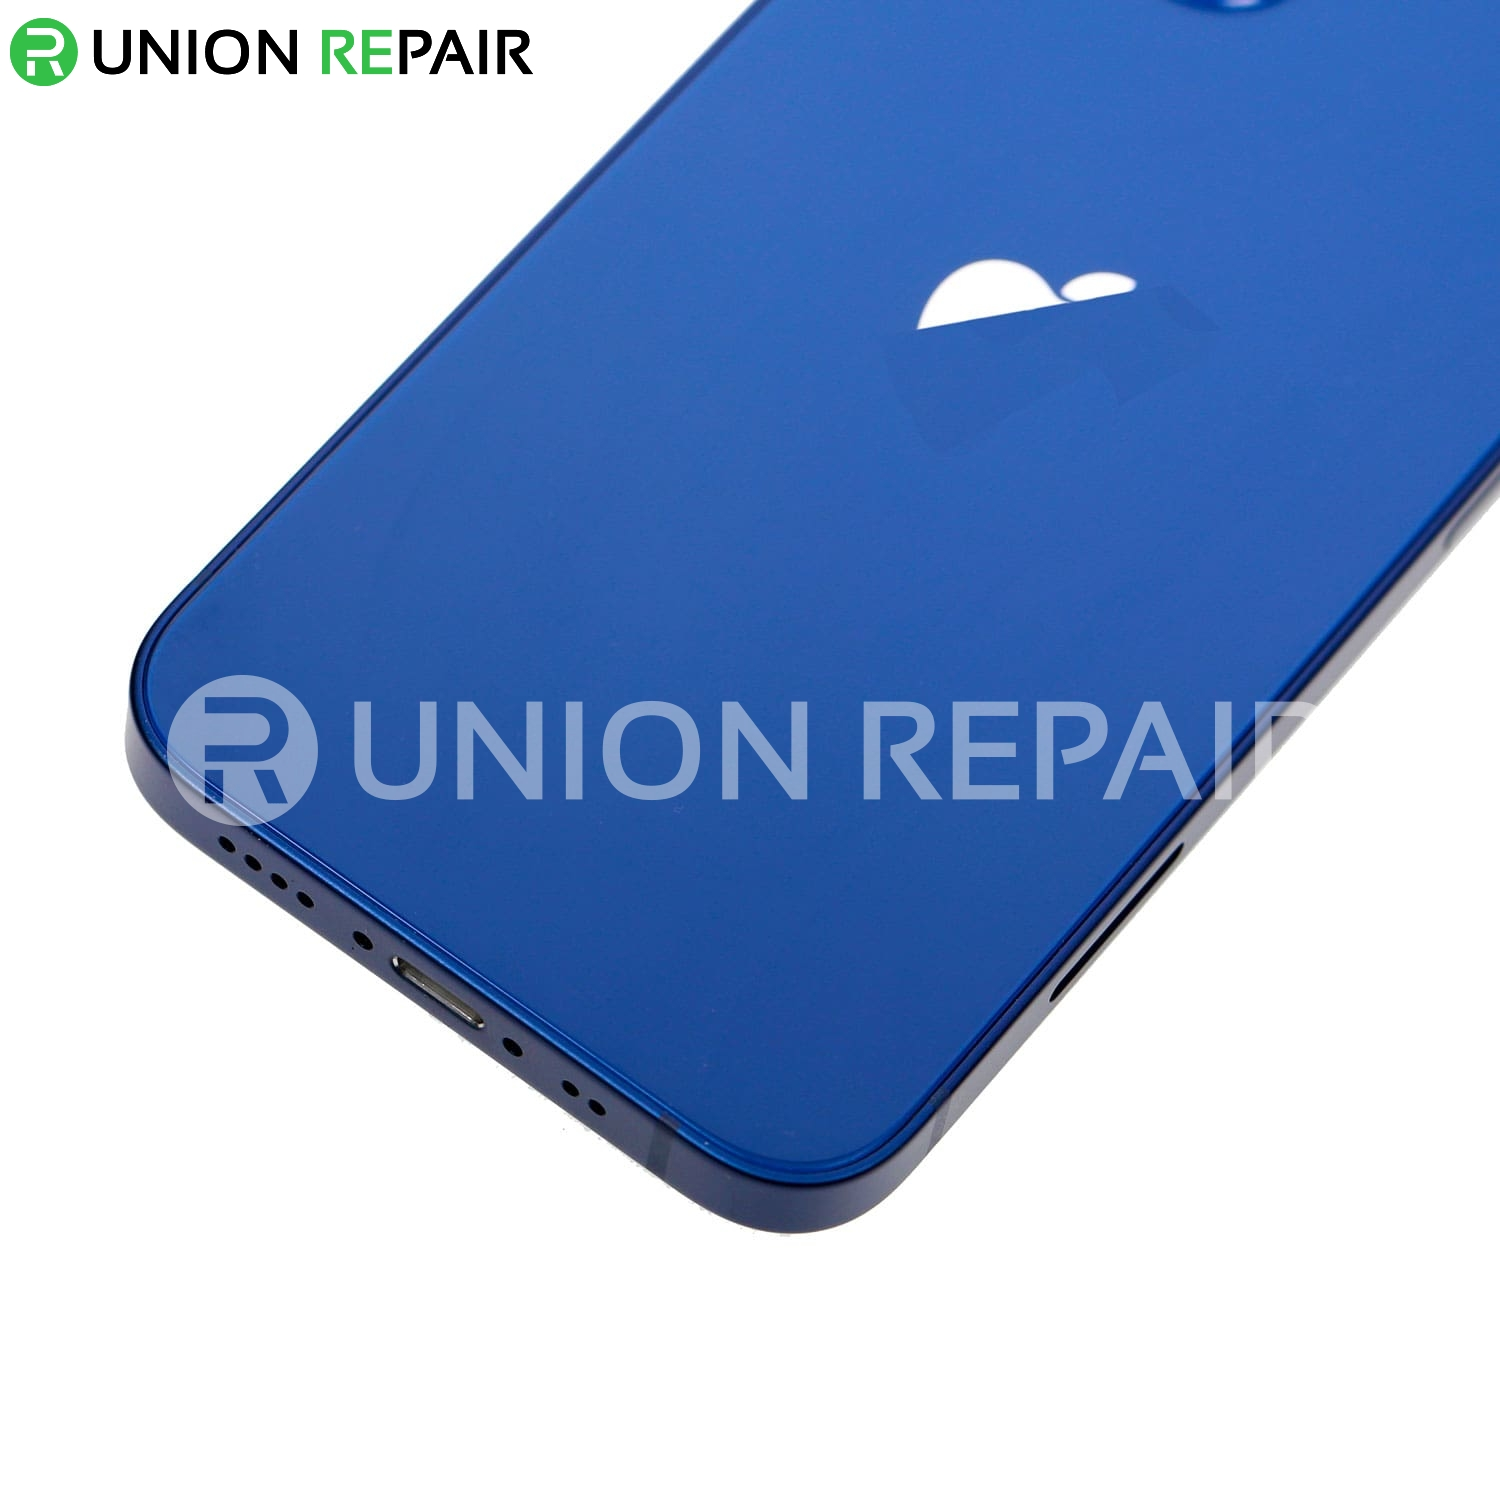 Replacement For iPhone 12 Mini Rear Housing with Frame - Blue